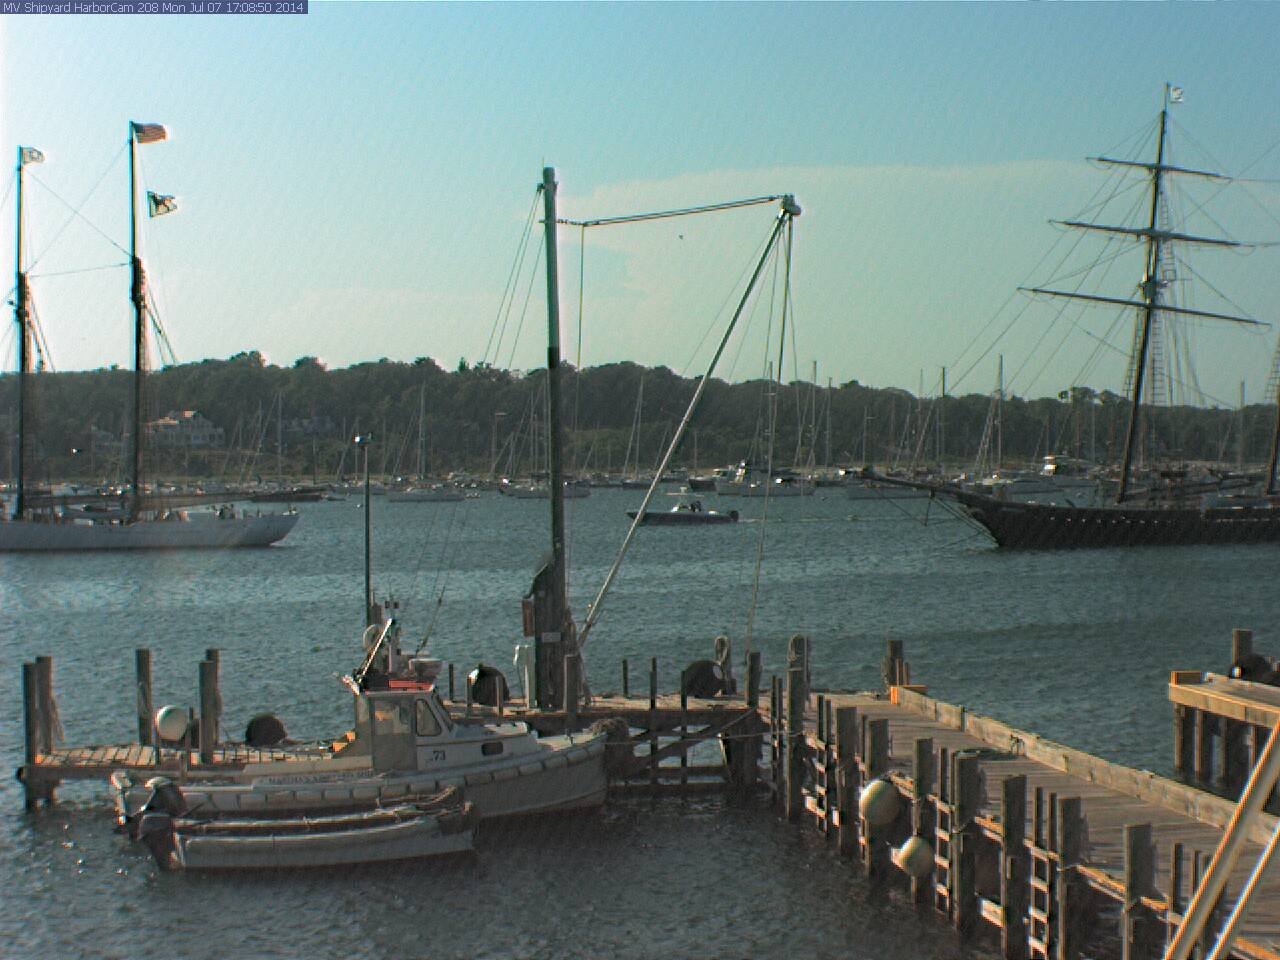 MVOL Webcam Overlooking Vineyard Haven Harbor, Martha's Vineyard